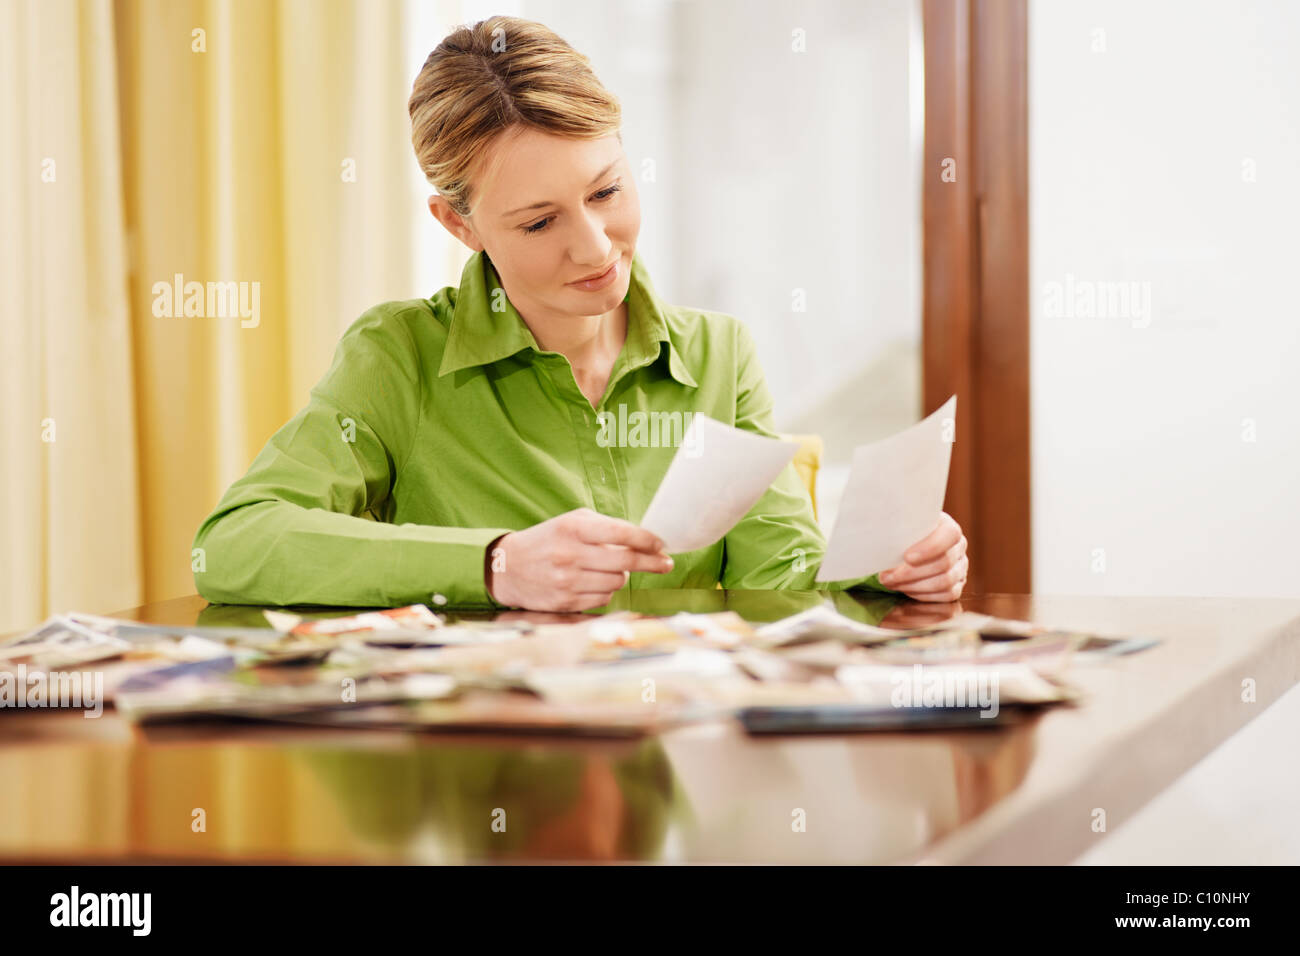 woman sitting and looking at pictures - Stock Image